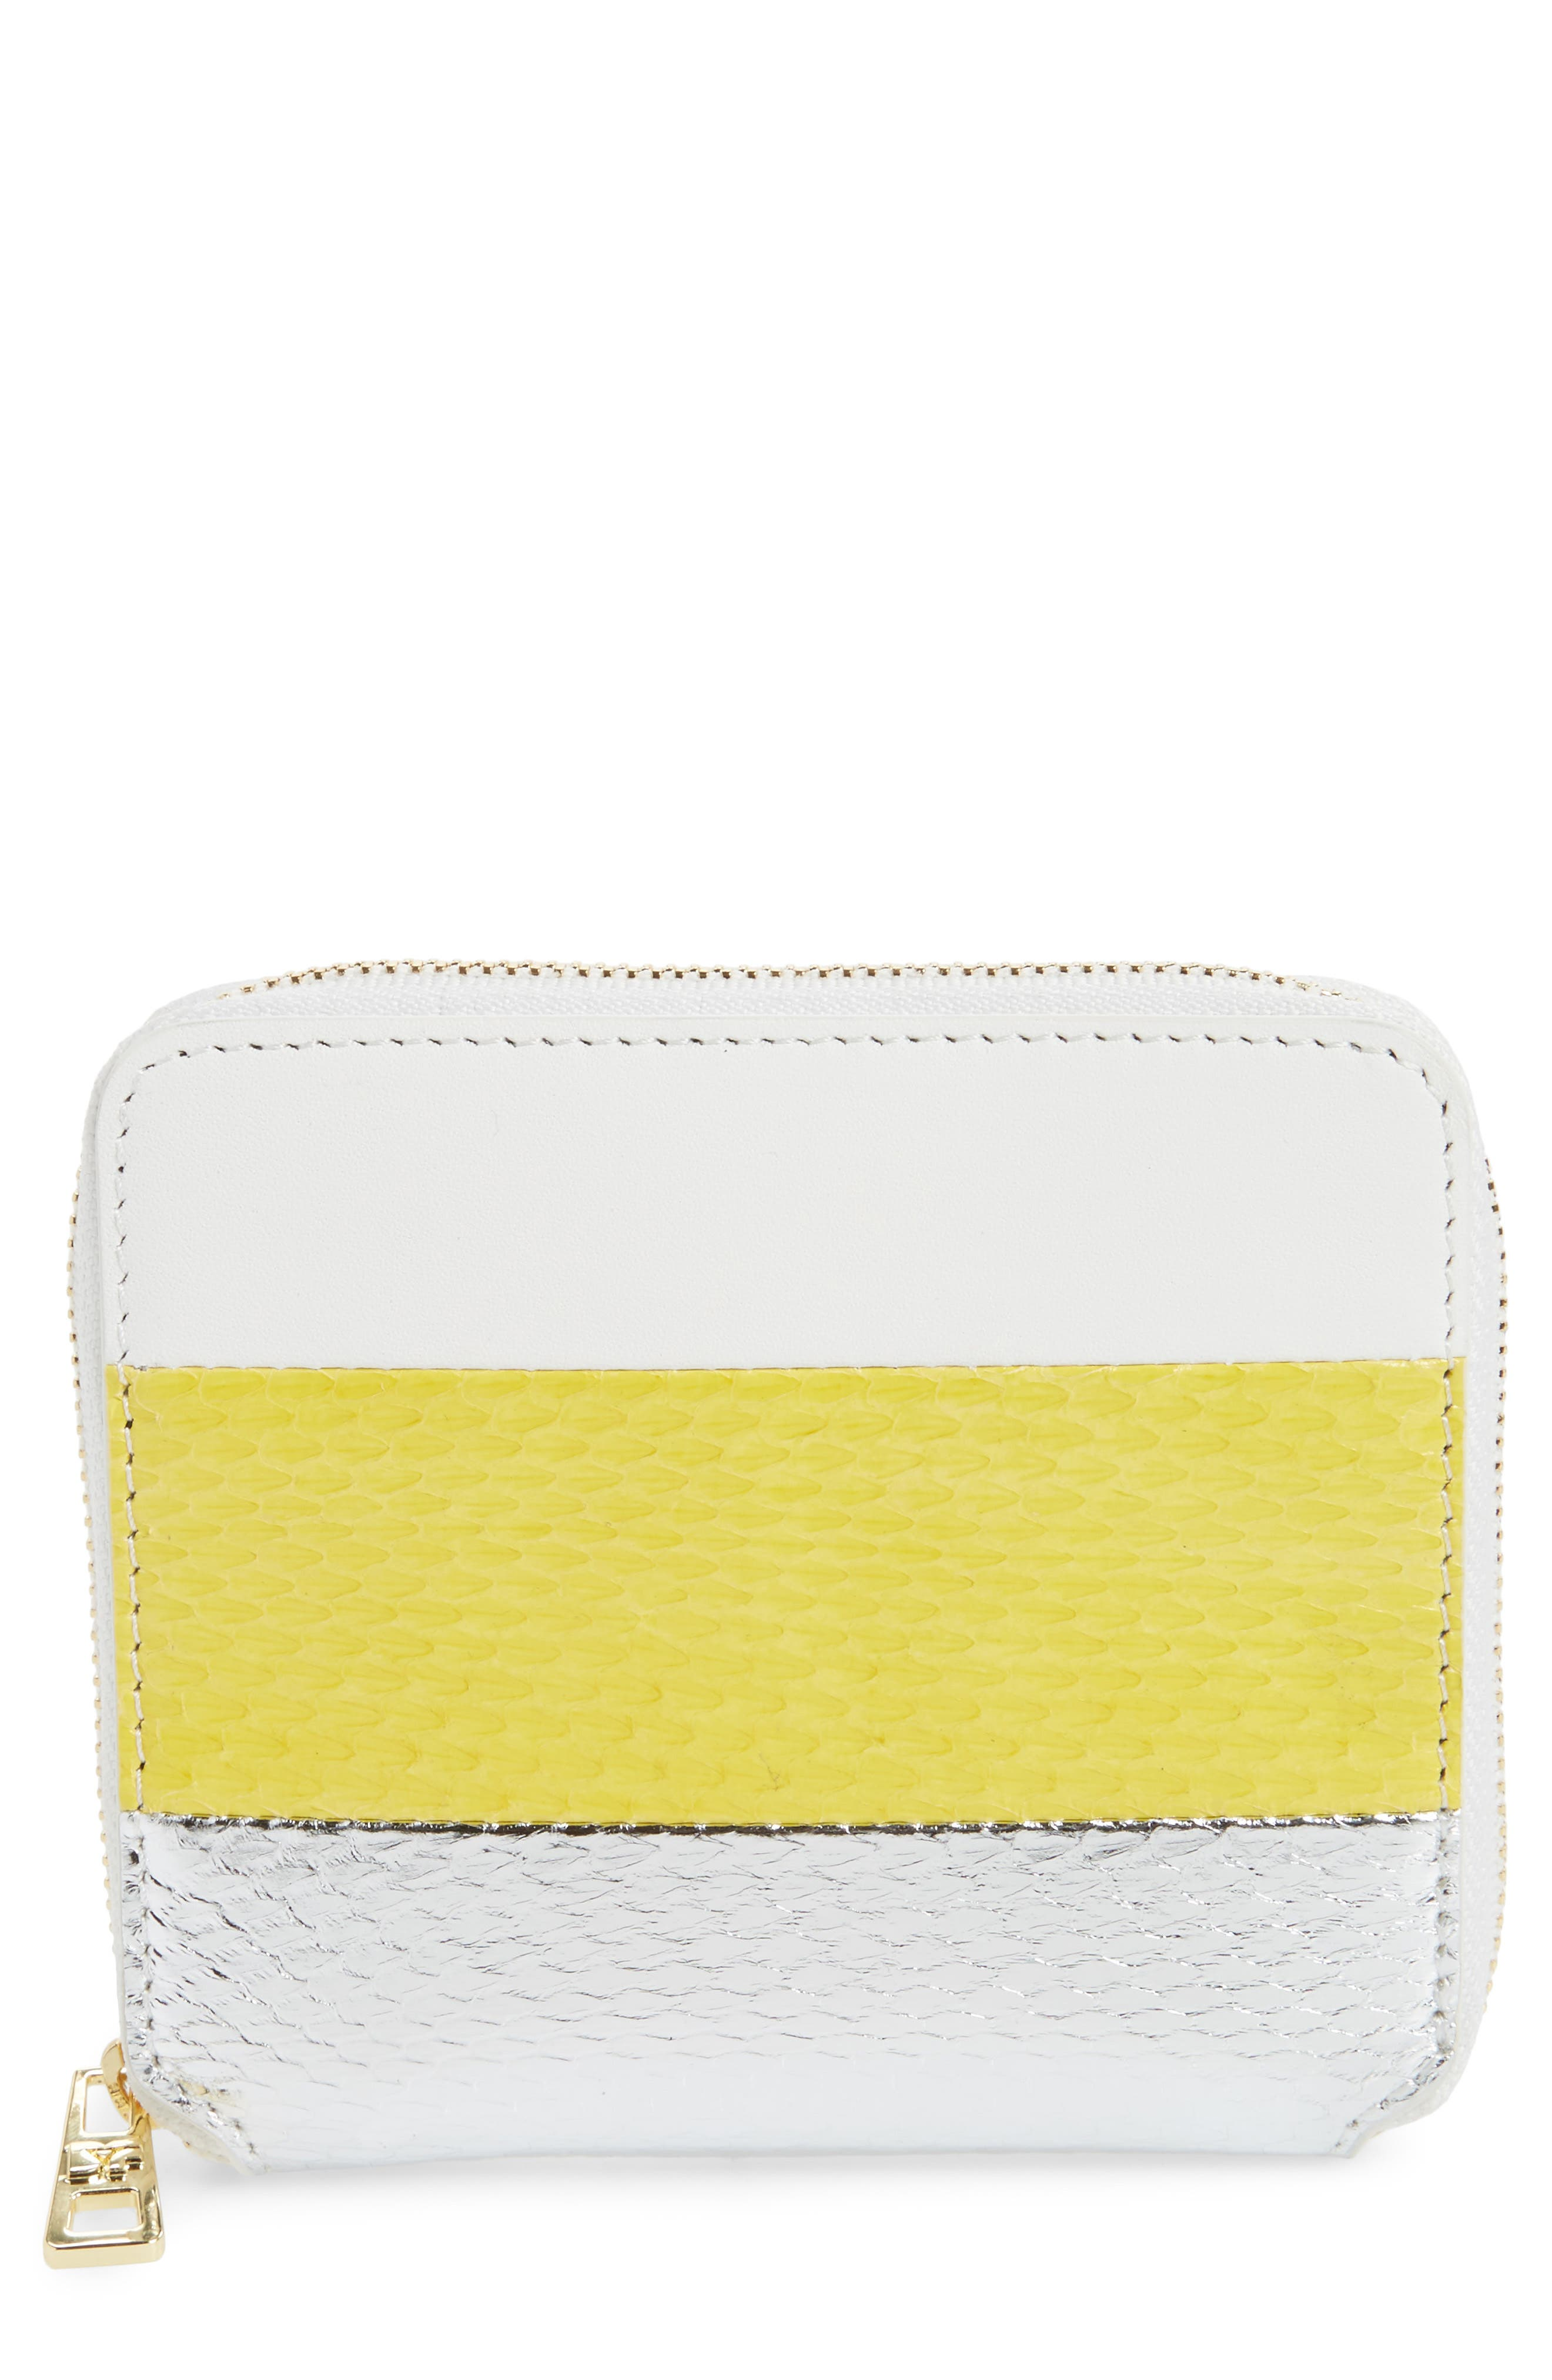 Small Leather & Genuine Snakeskin Zip Wallet,                             Main thumbnail 1, color,                             700